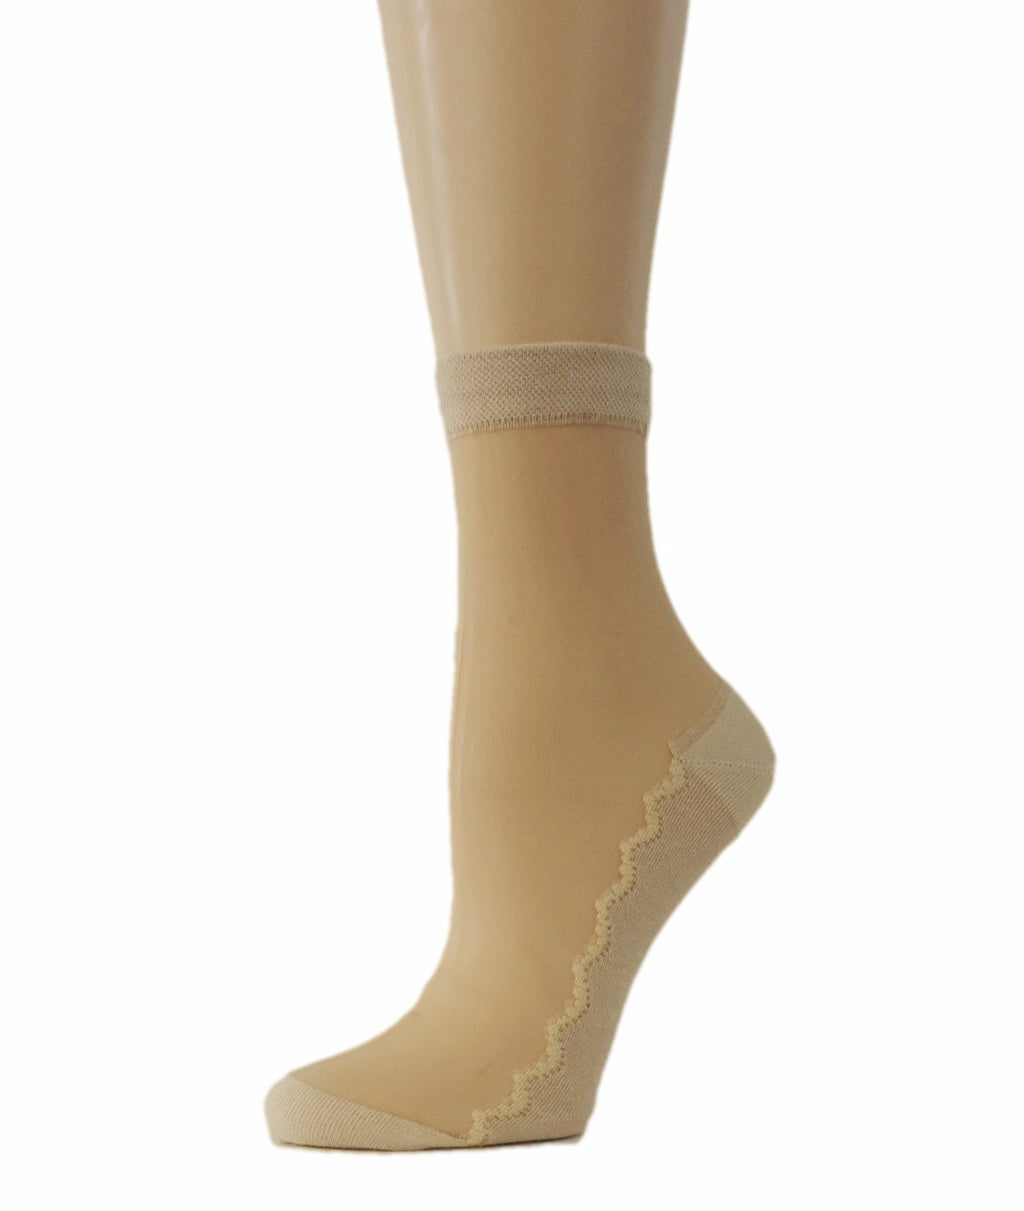 Simple Beige Striped Sheer Socks - Global Trendz Fashion®